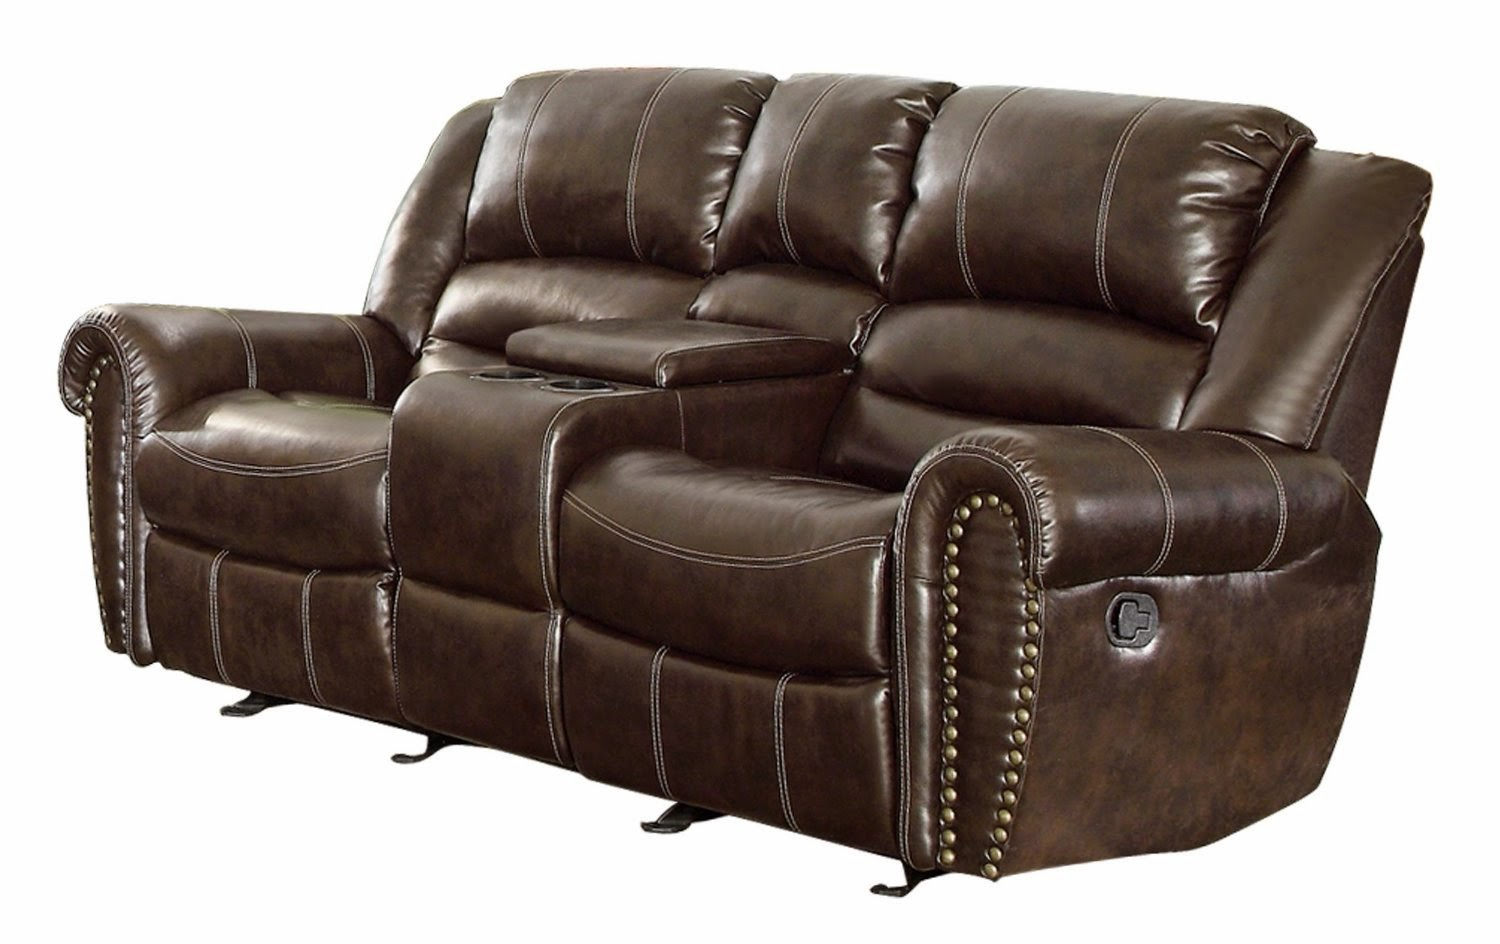 Where Is The Best Place To Buy Recliner Sofa 2 Seater Brown Leather Recliner Sofa